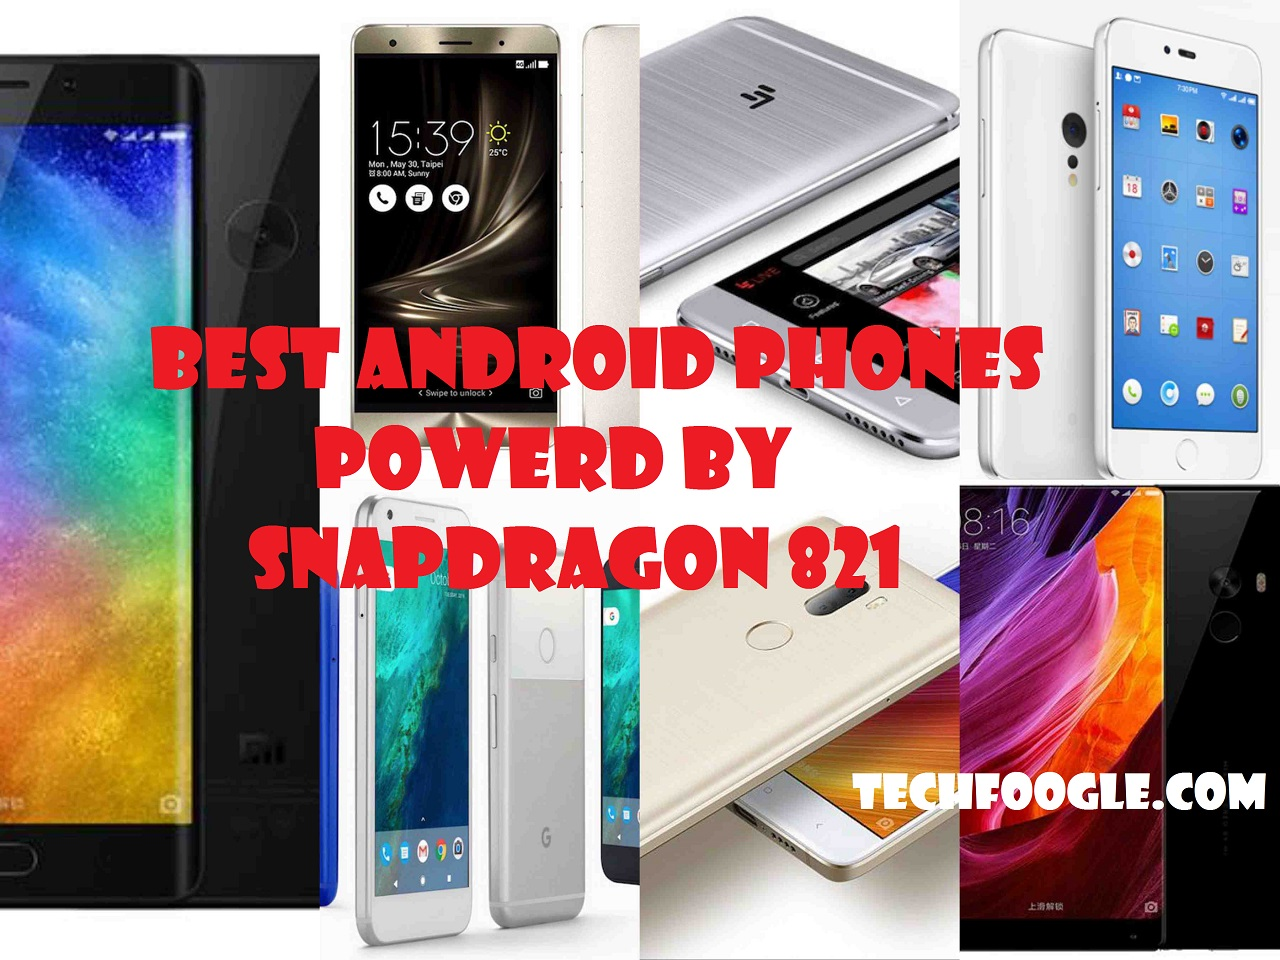 best android phones powered by snapdragon 821. Black Bedroom Furniture Sets. Home Design Ideas